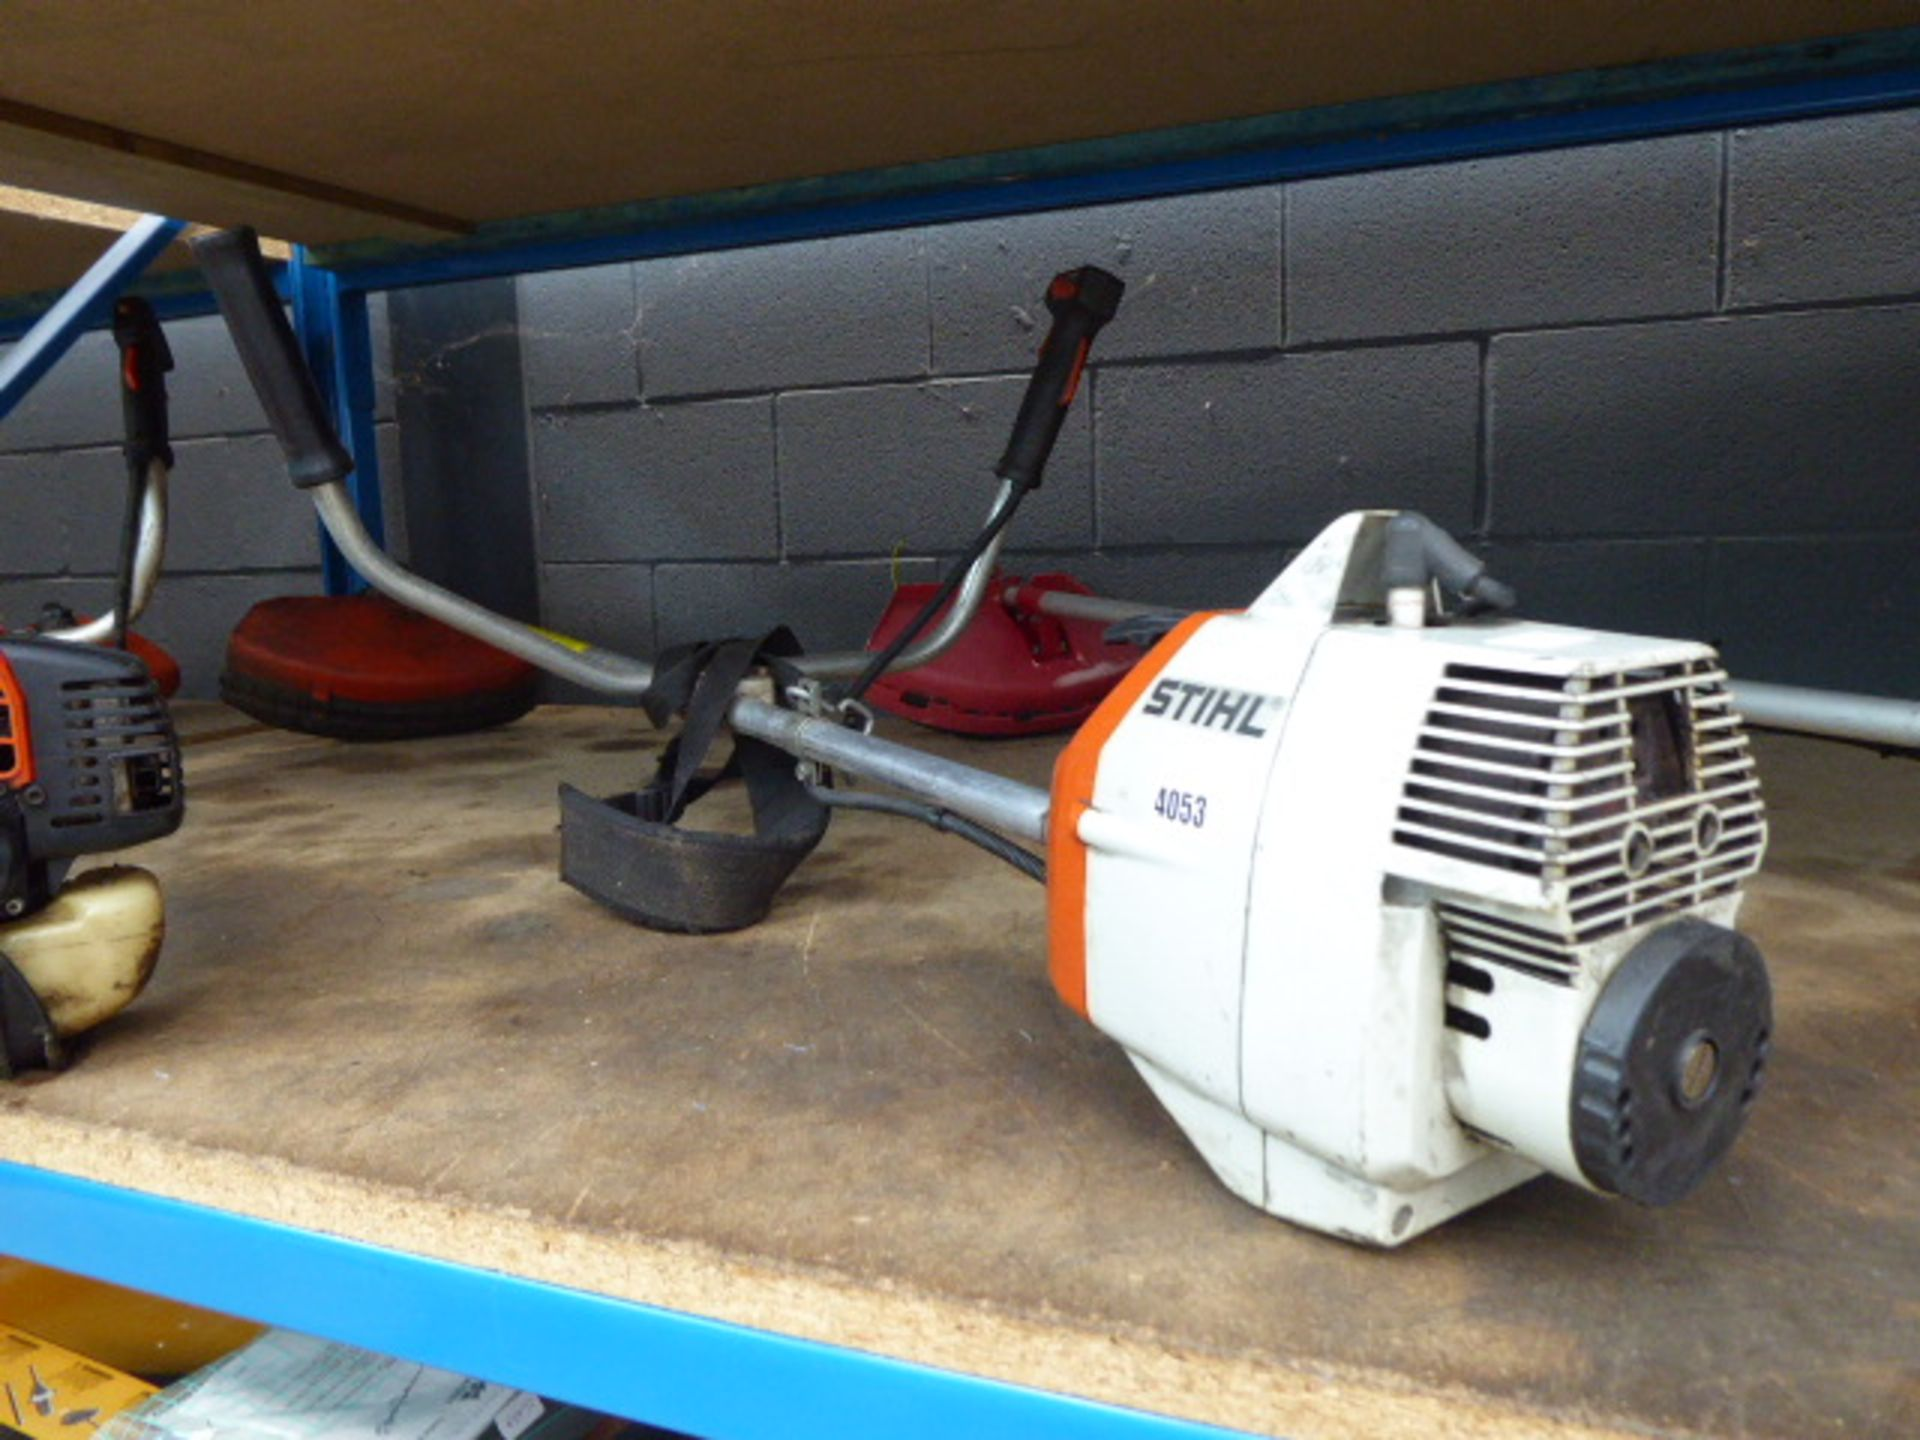 Lot 4053 - Stihl petrol powered strimmer